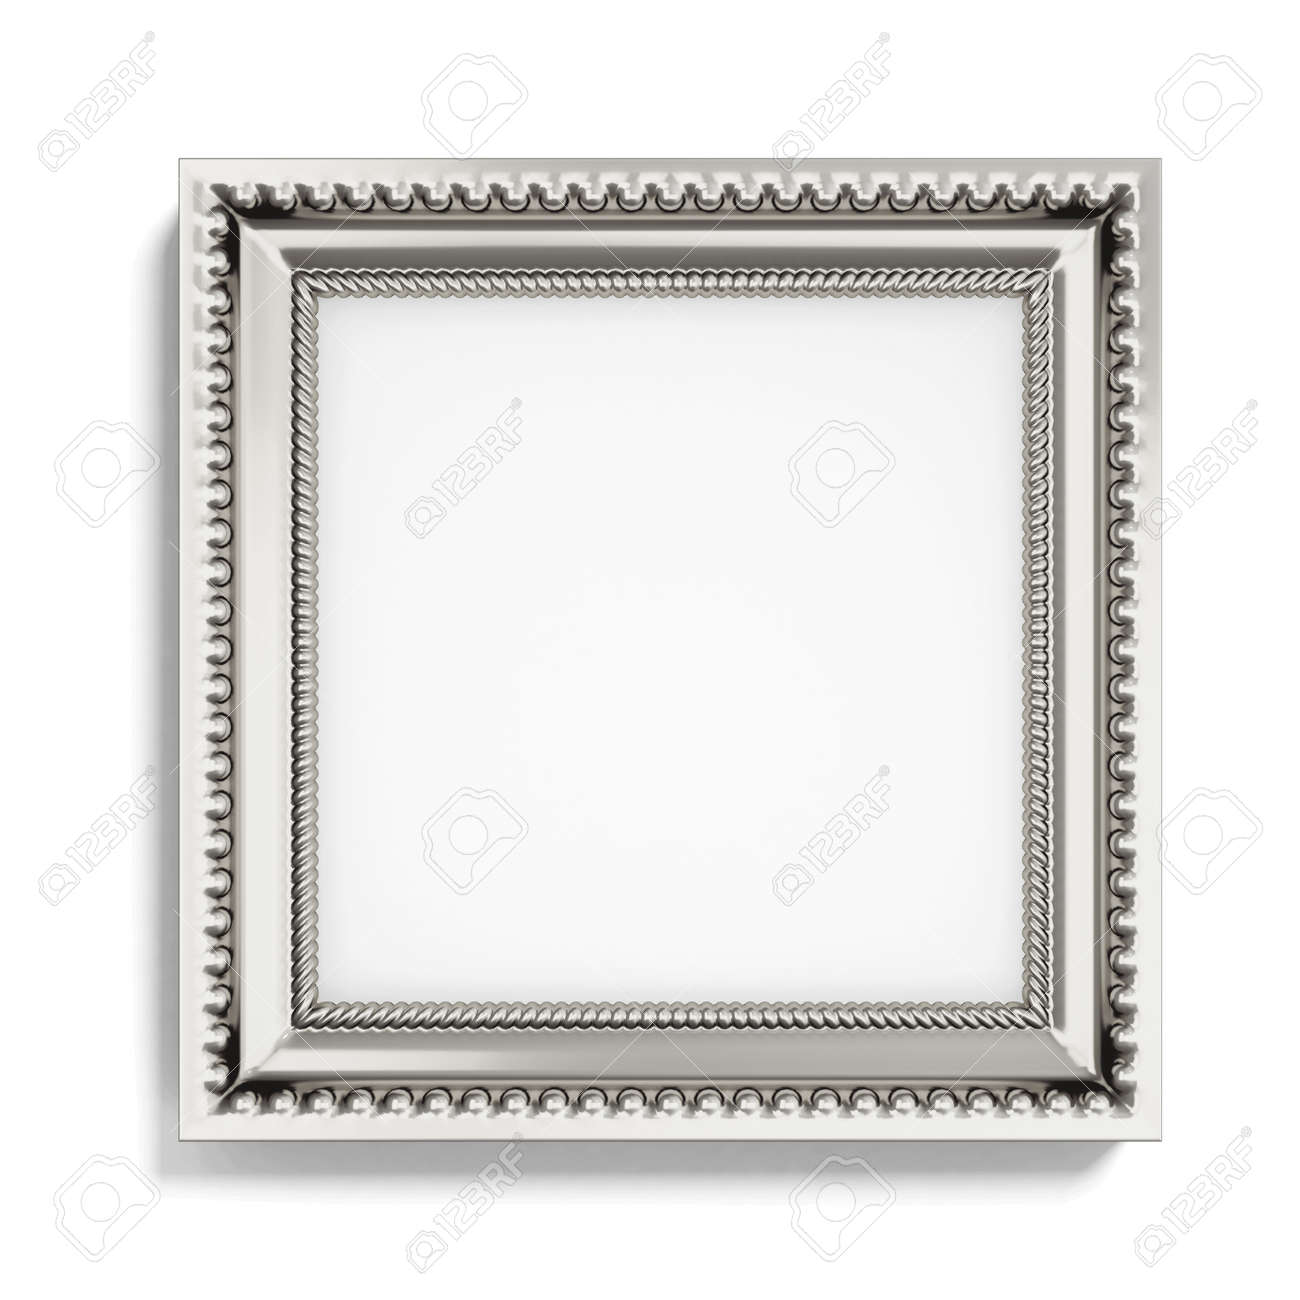 Carved Silver Picture Frame On White Background. 3d Rendering. Stock ...